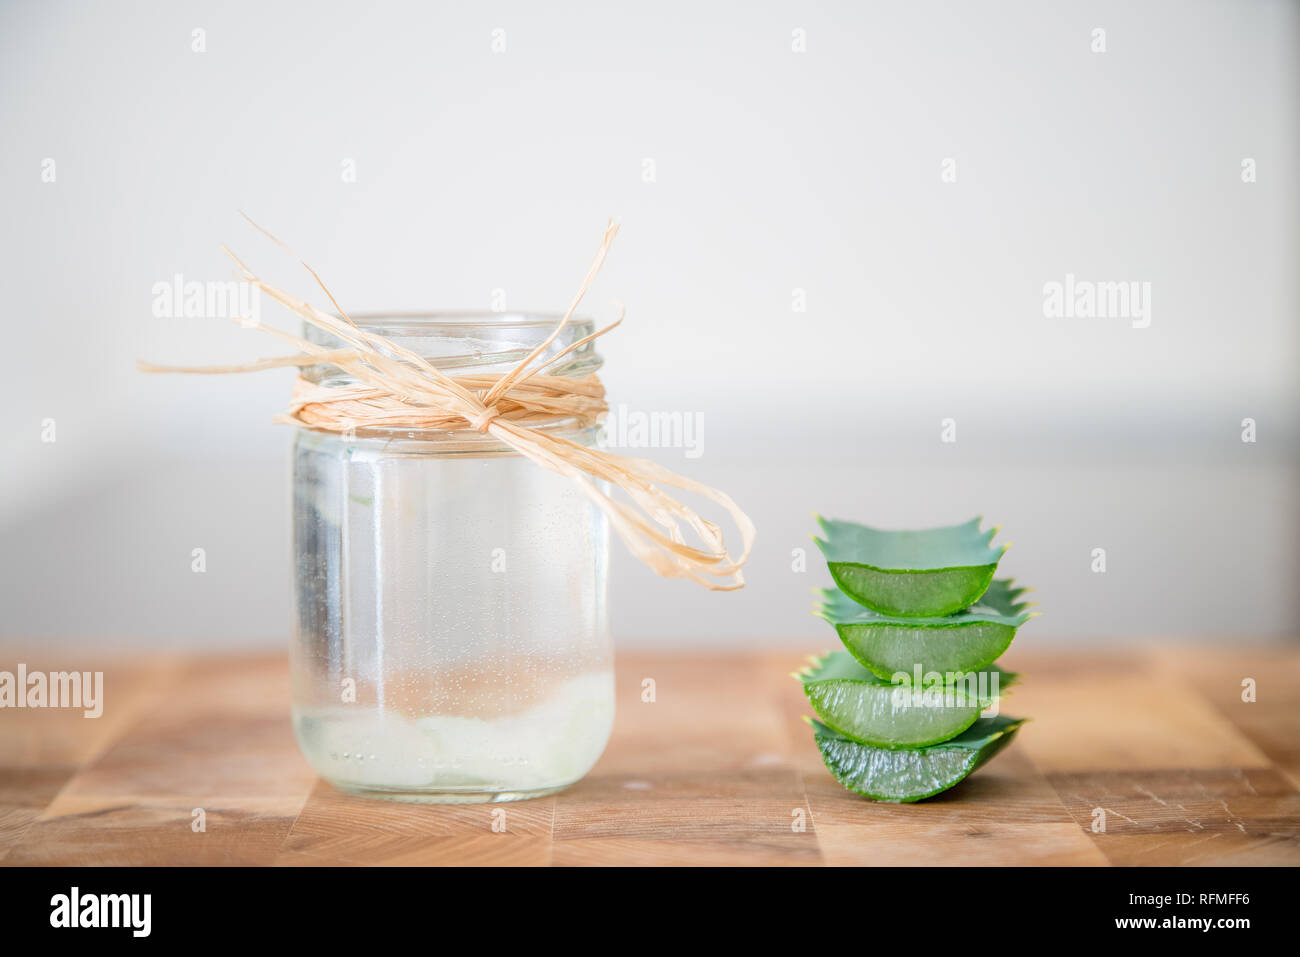 Essence from aloe vera plan in cosmetic bottle with slices of plant stacked on top of each other on the side and space for text - Stock Image